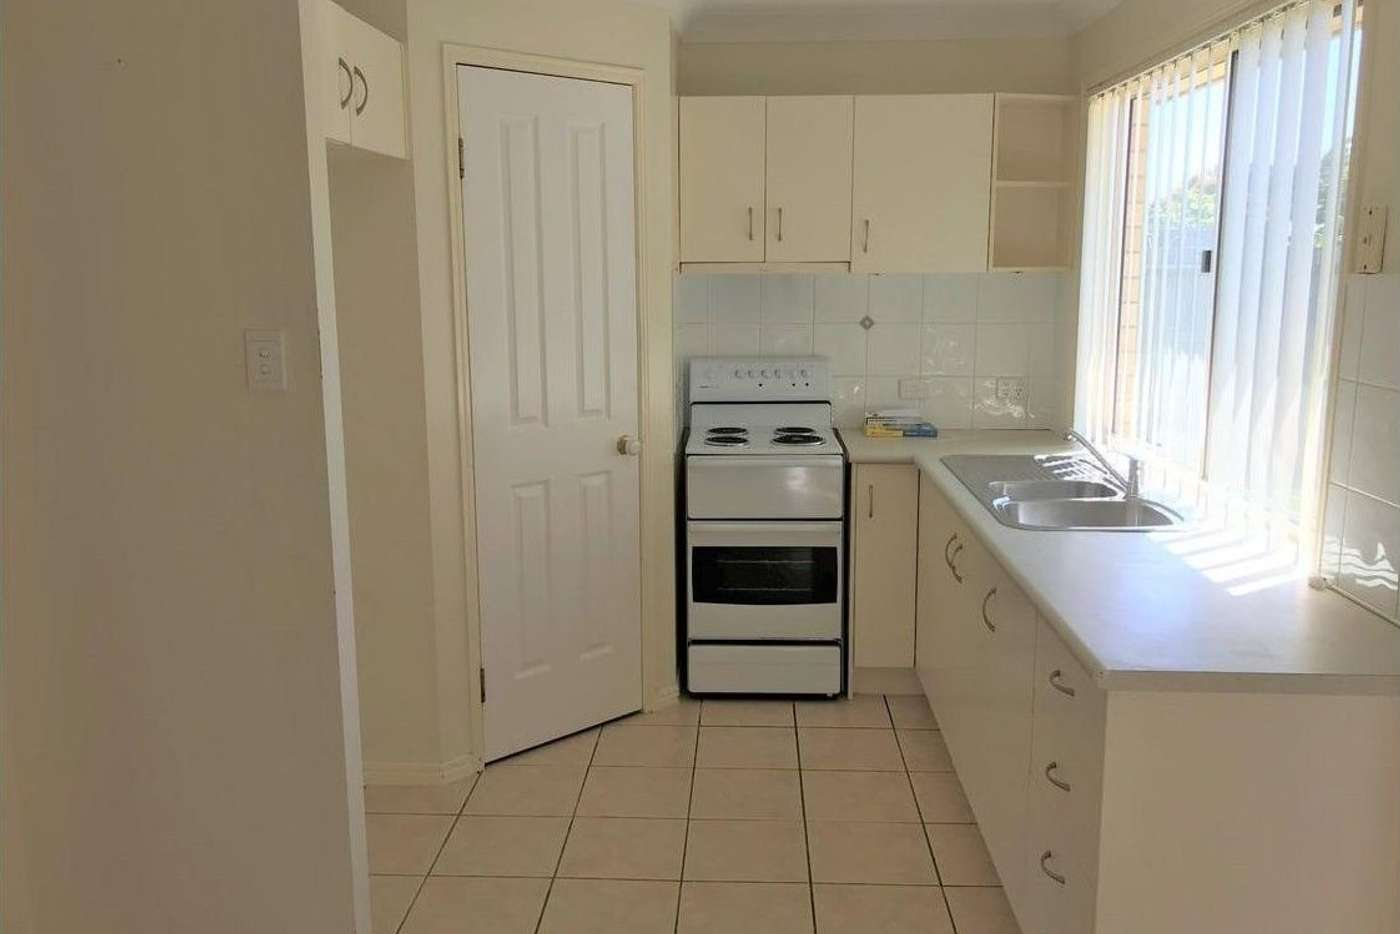 Sixth view of Homely house listing, 33 Lawson Street, Caboolture QLD 4510